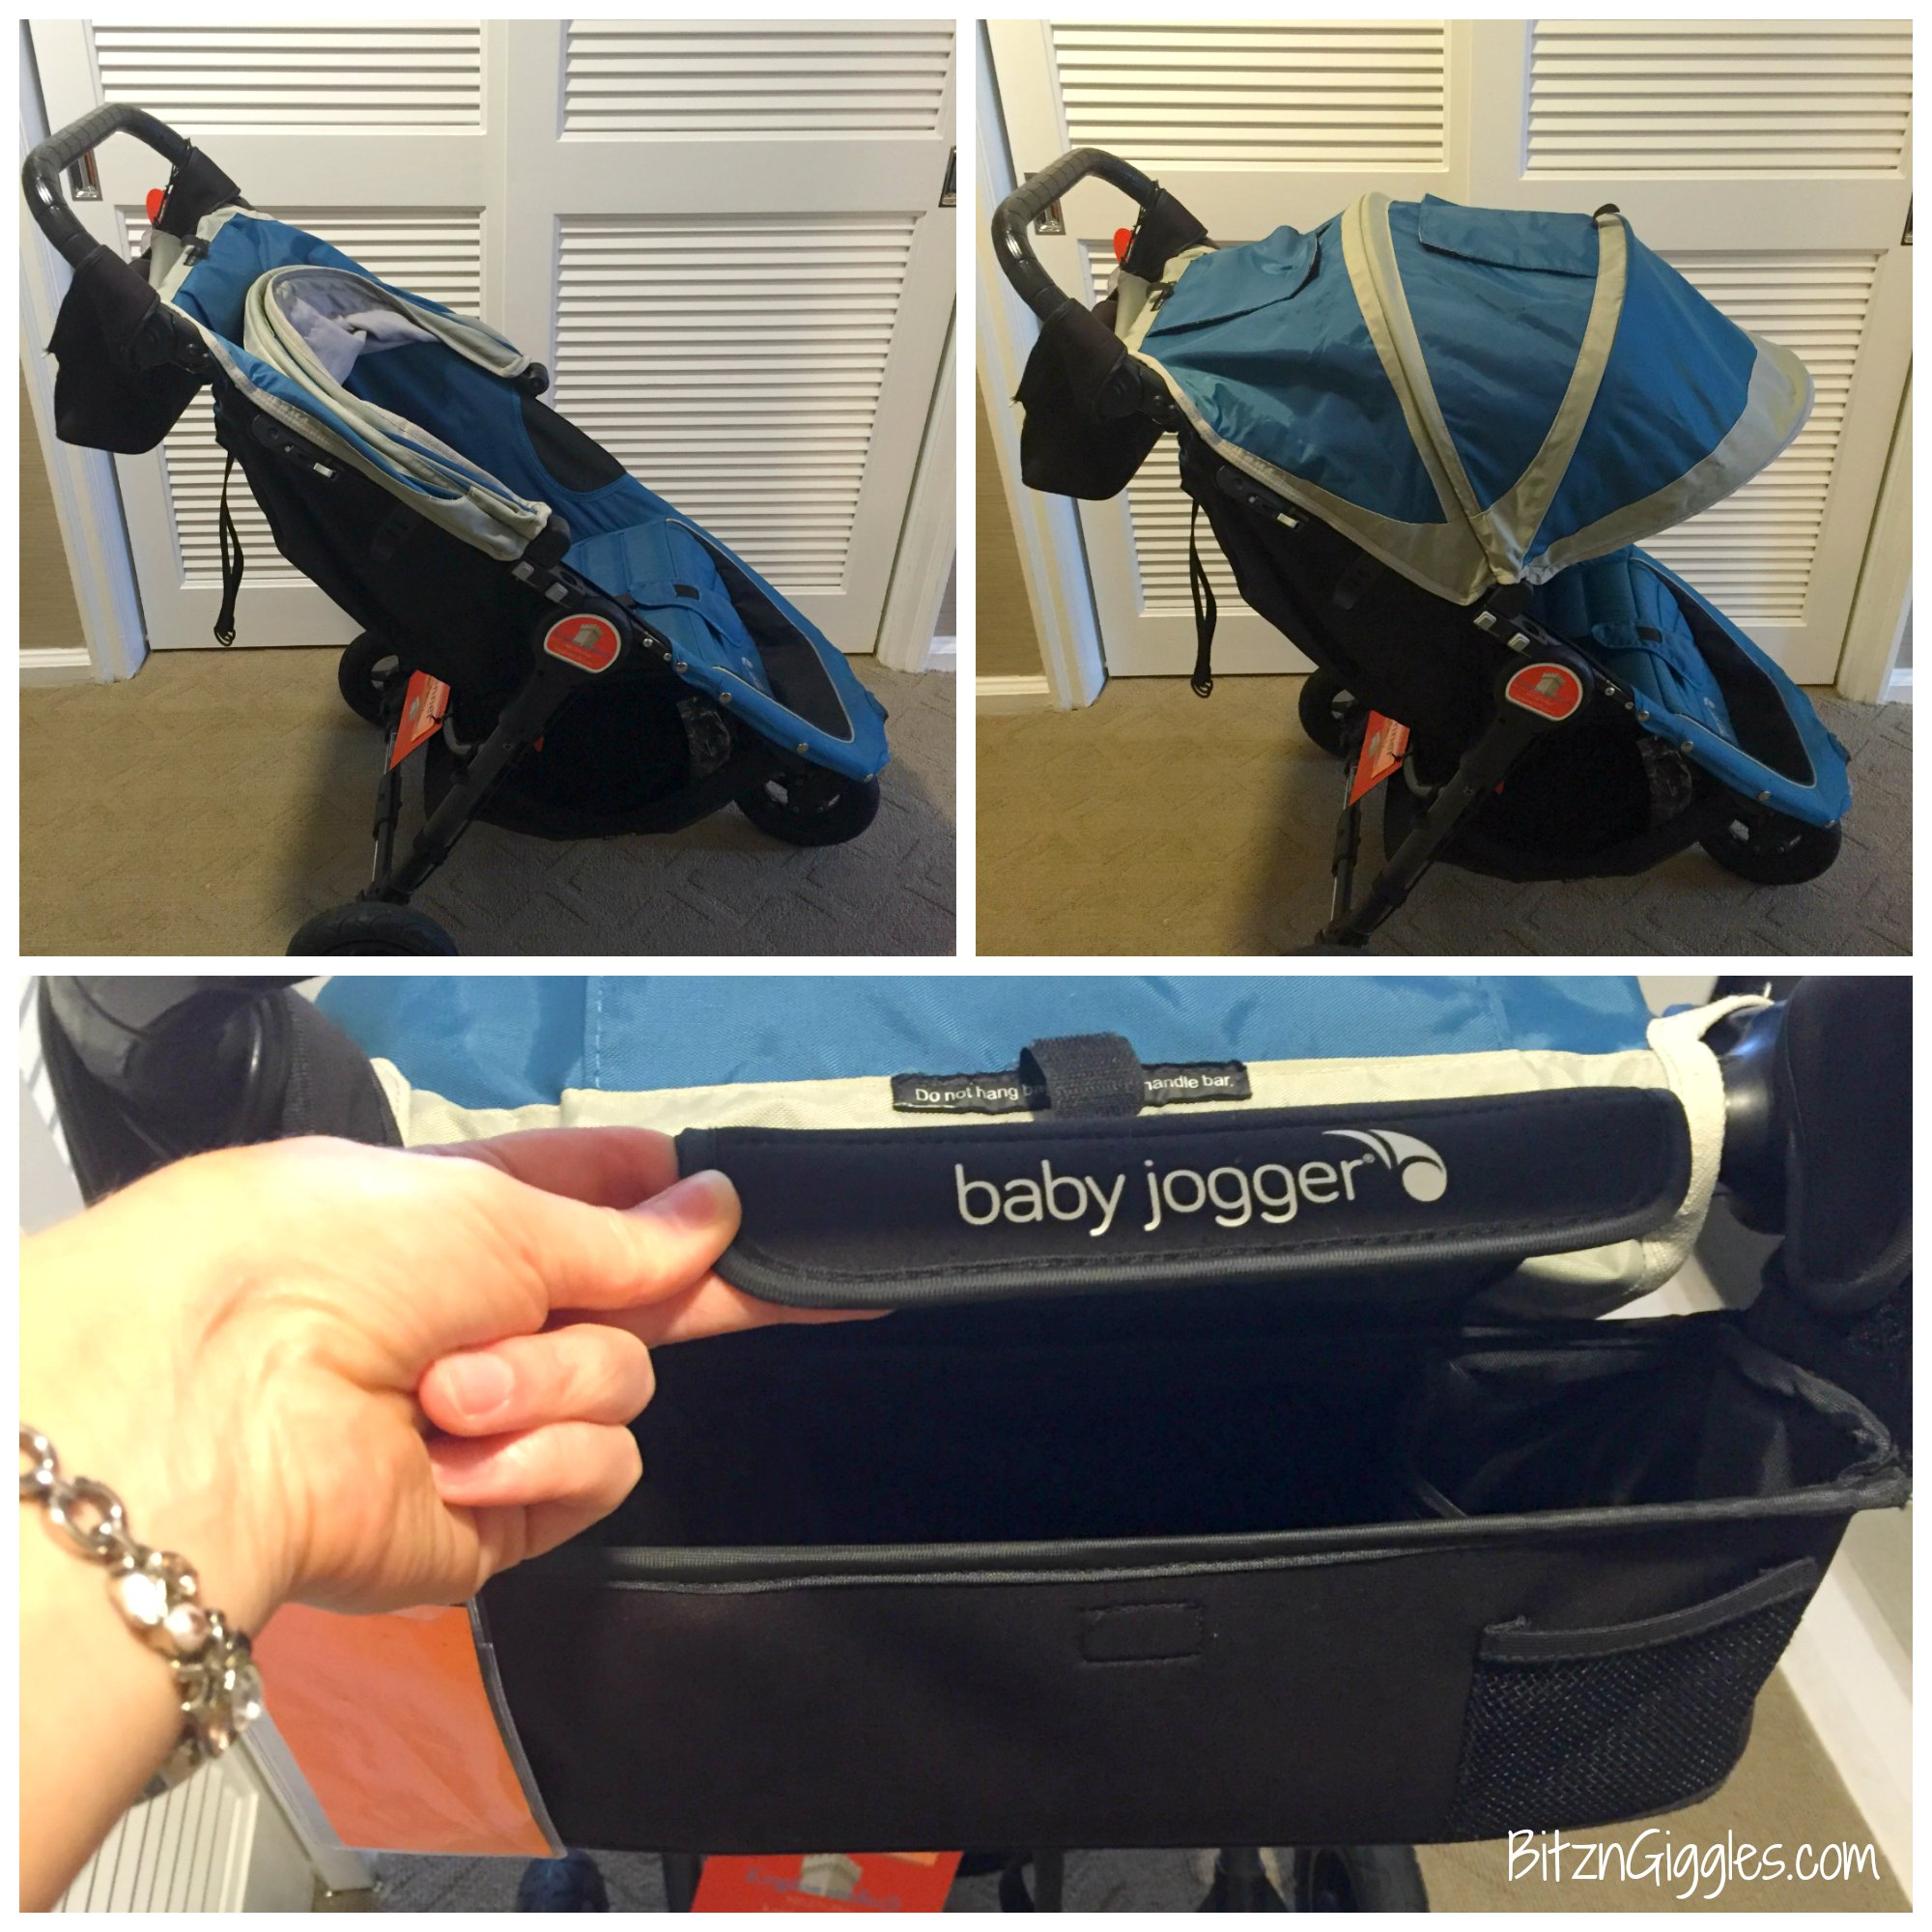 Do I Need a Stroller for My Preschooler at Disney World? - Make sure your trip to Disney World is a magical one with minimal crying and whining. Our stroller rental was a lifesaver at Disney World!